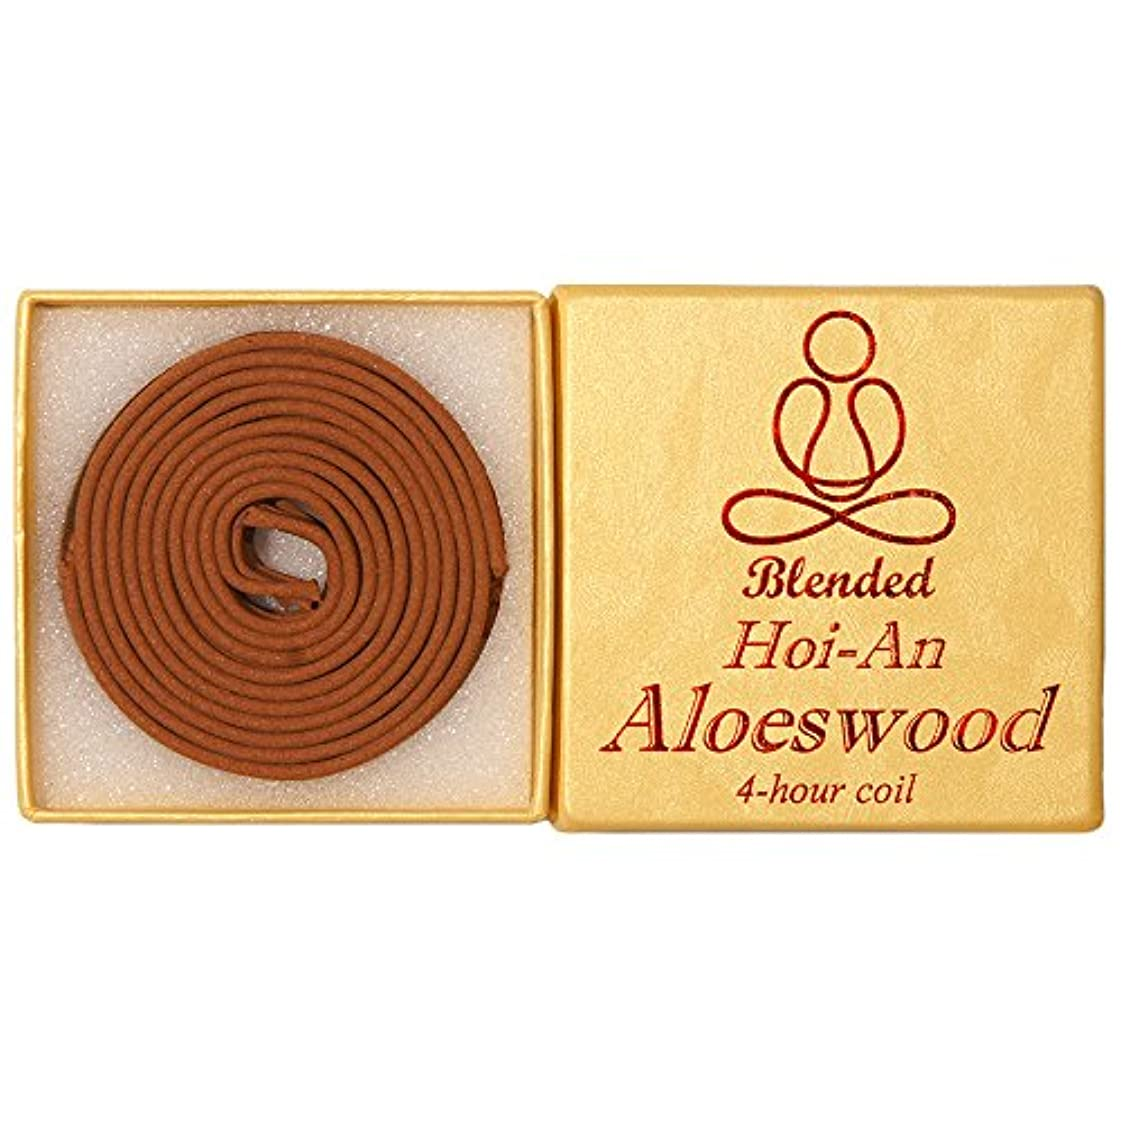 南西中間習慣Blended Hoi-An Aloeswood - 12 pieces 4-hour Coil - 100% natural - GHC152T